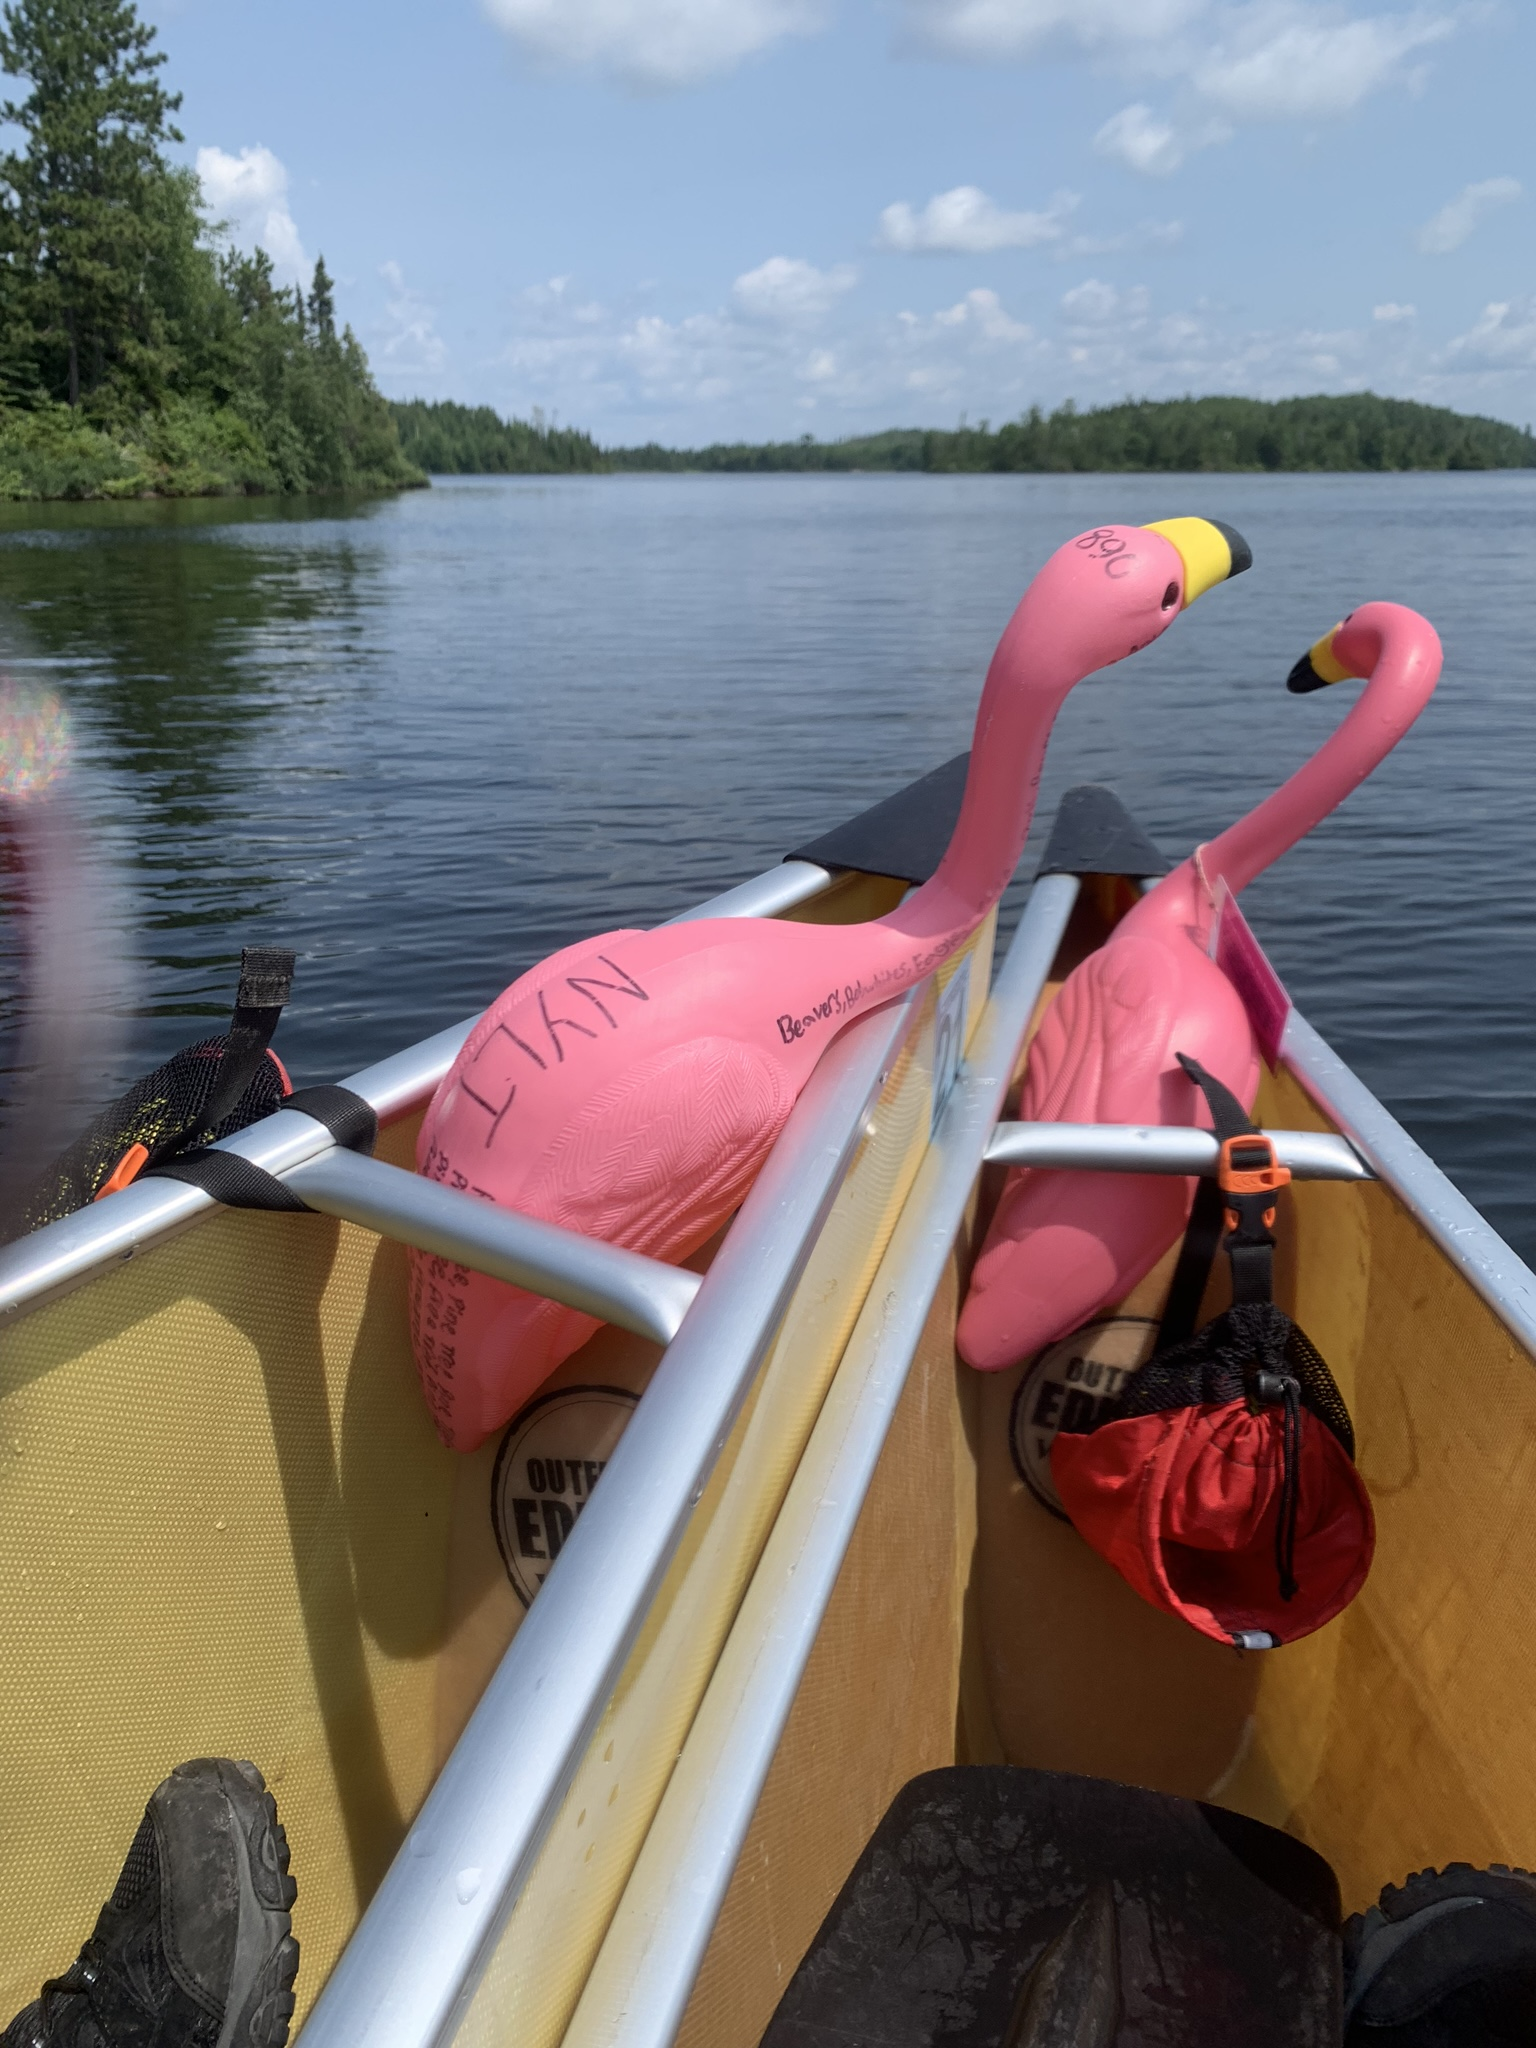 """Our official Constantin Summer Camp flamingos are named Pavel and Penelope. We have a new NYLT flamingo named Pine Tree who made the trip with us. Here, Pine Tree is trying, maybe, to attack the flamingo on right (soon to be named """"Portage"""" as the Northern Tier flamingo)"""